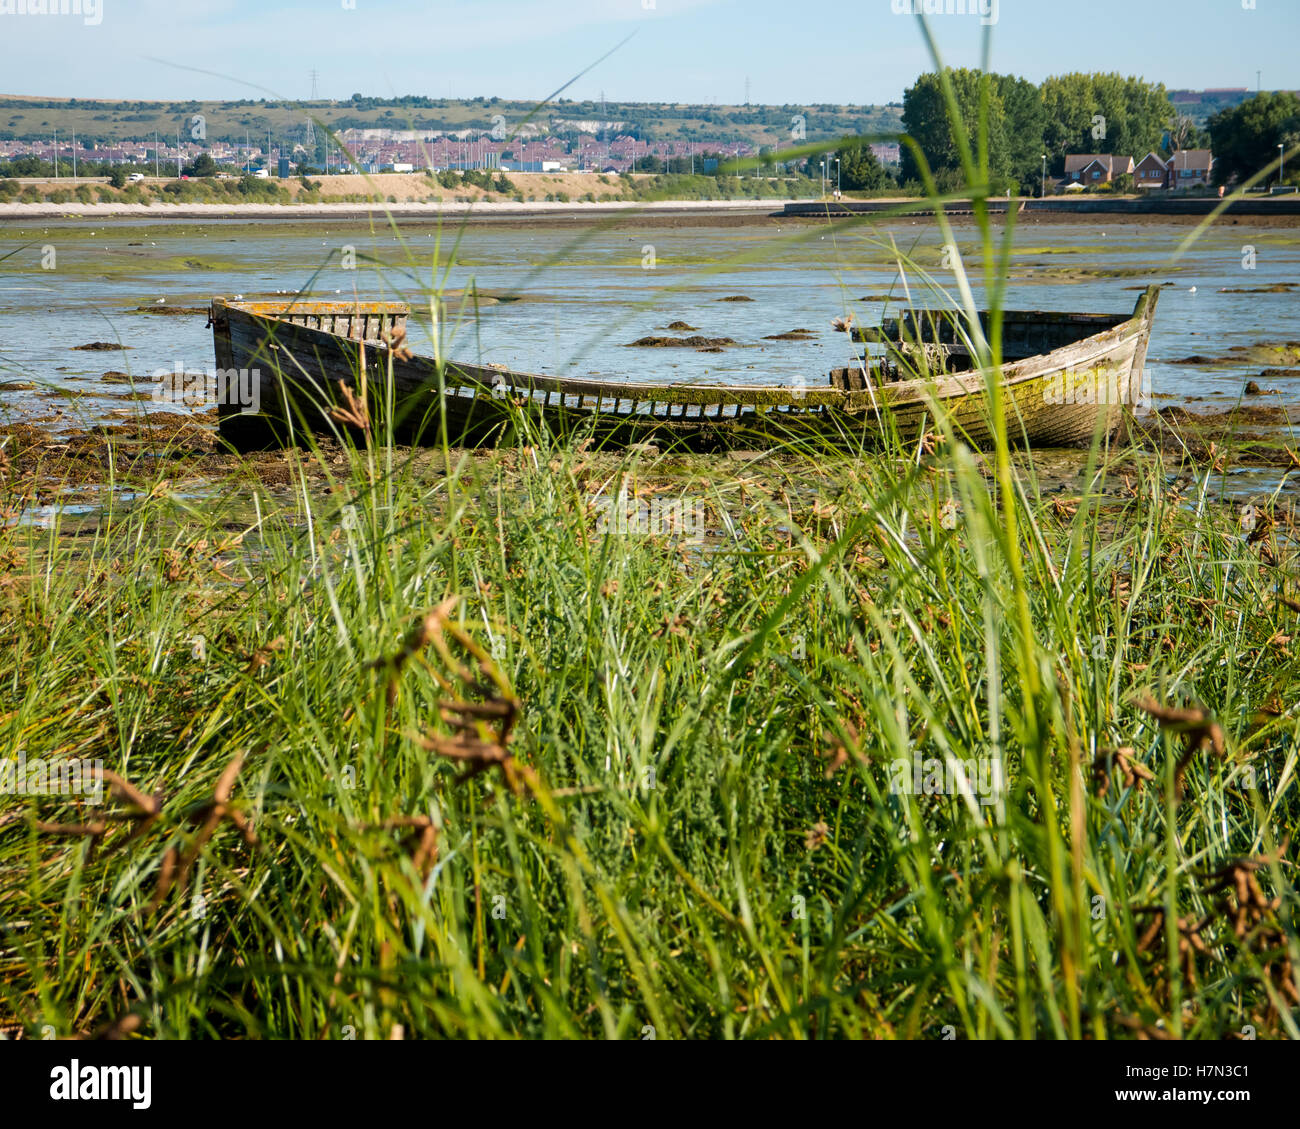 a-rotting-boat-on-the-shore-of-tipner-lake-in-portsmouth-harbour-england-H7N3C1.jpg